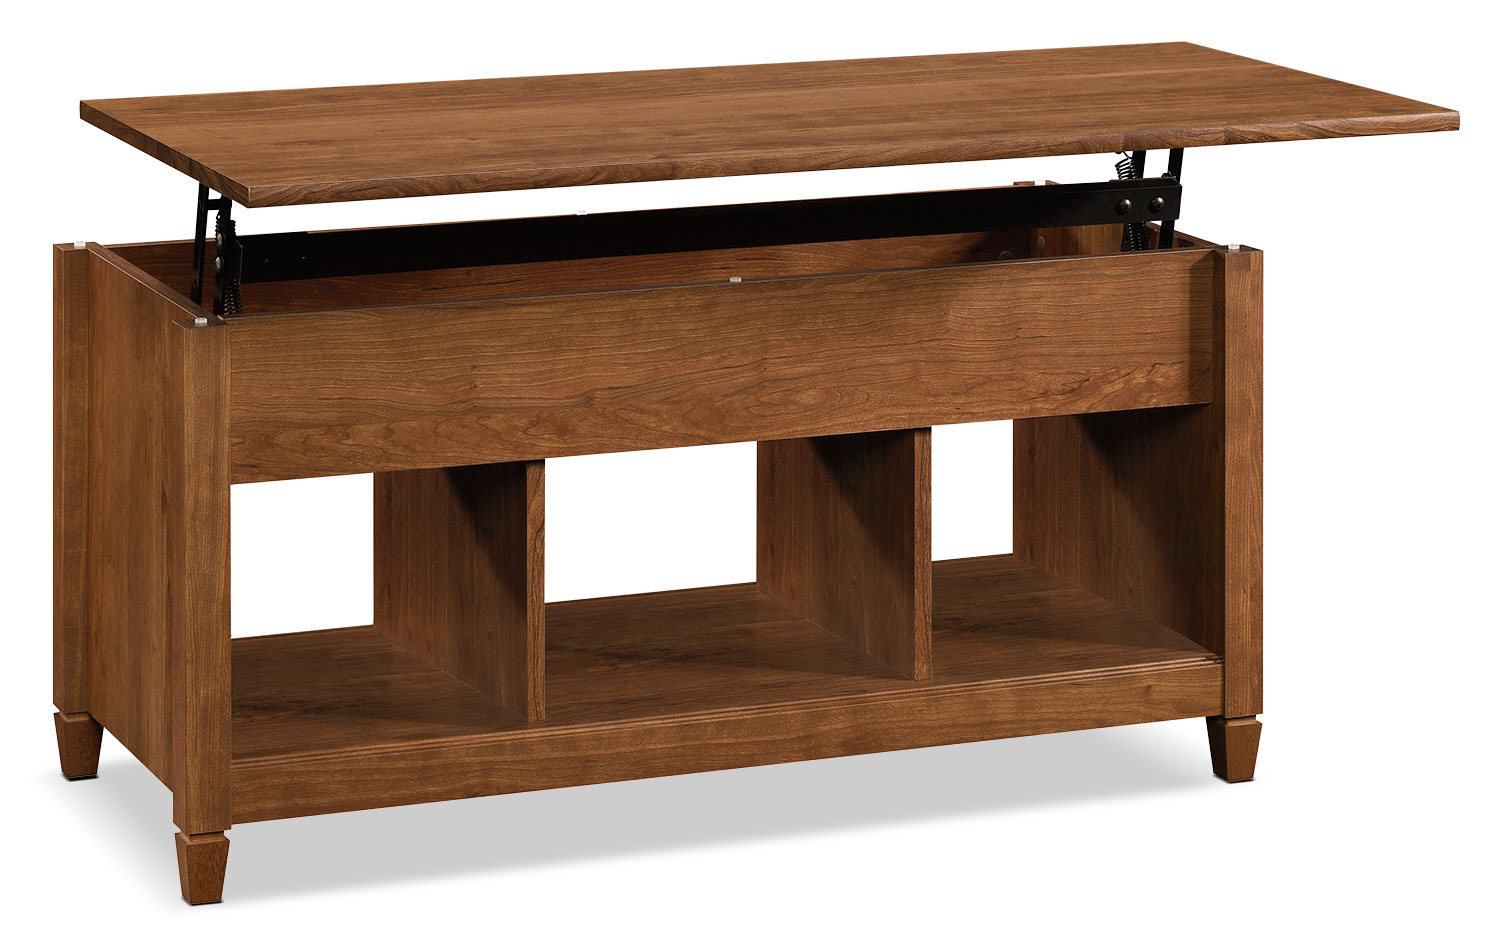 Edge Water Coffee Table with Lift Top – Auburn Cherry